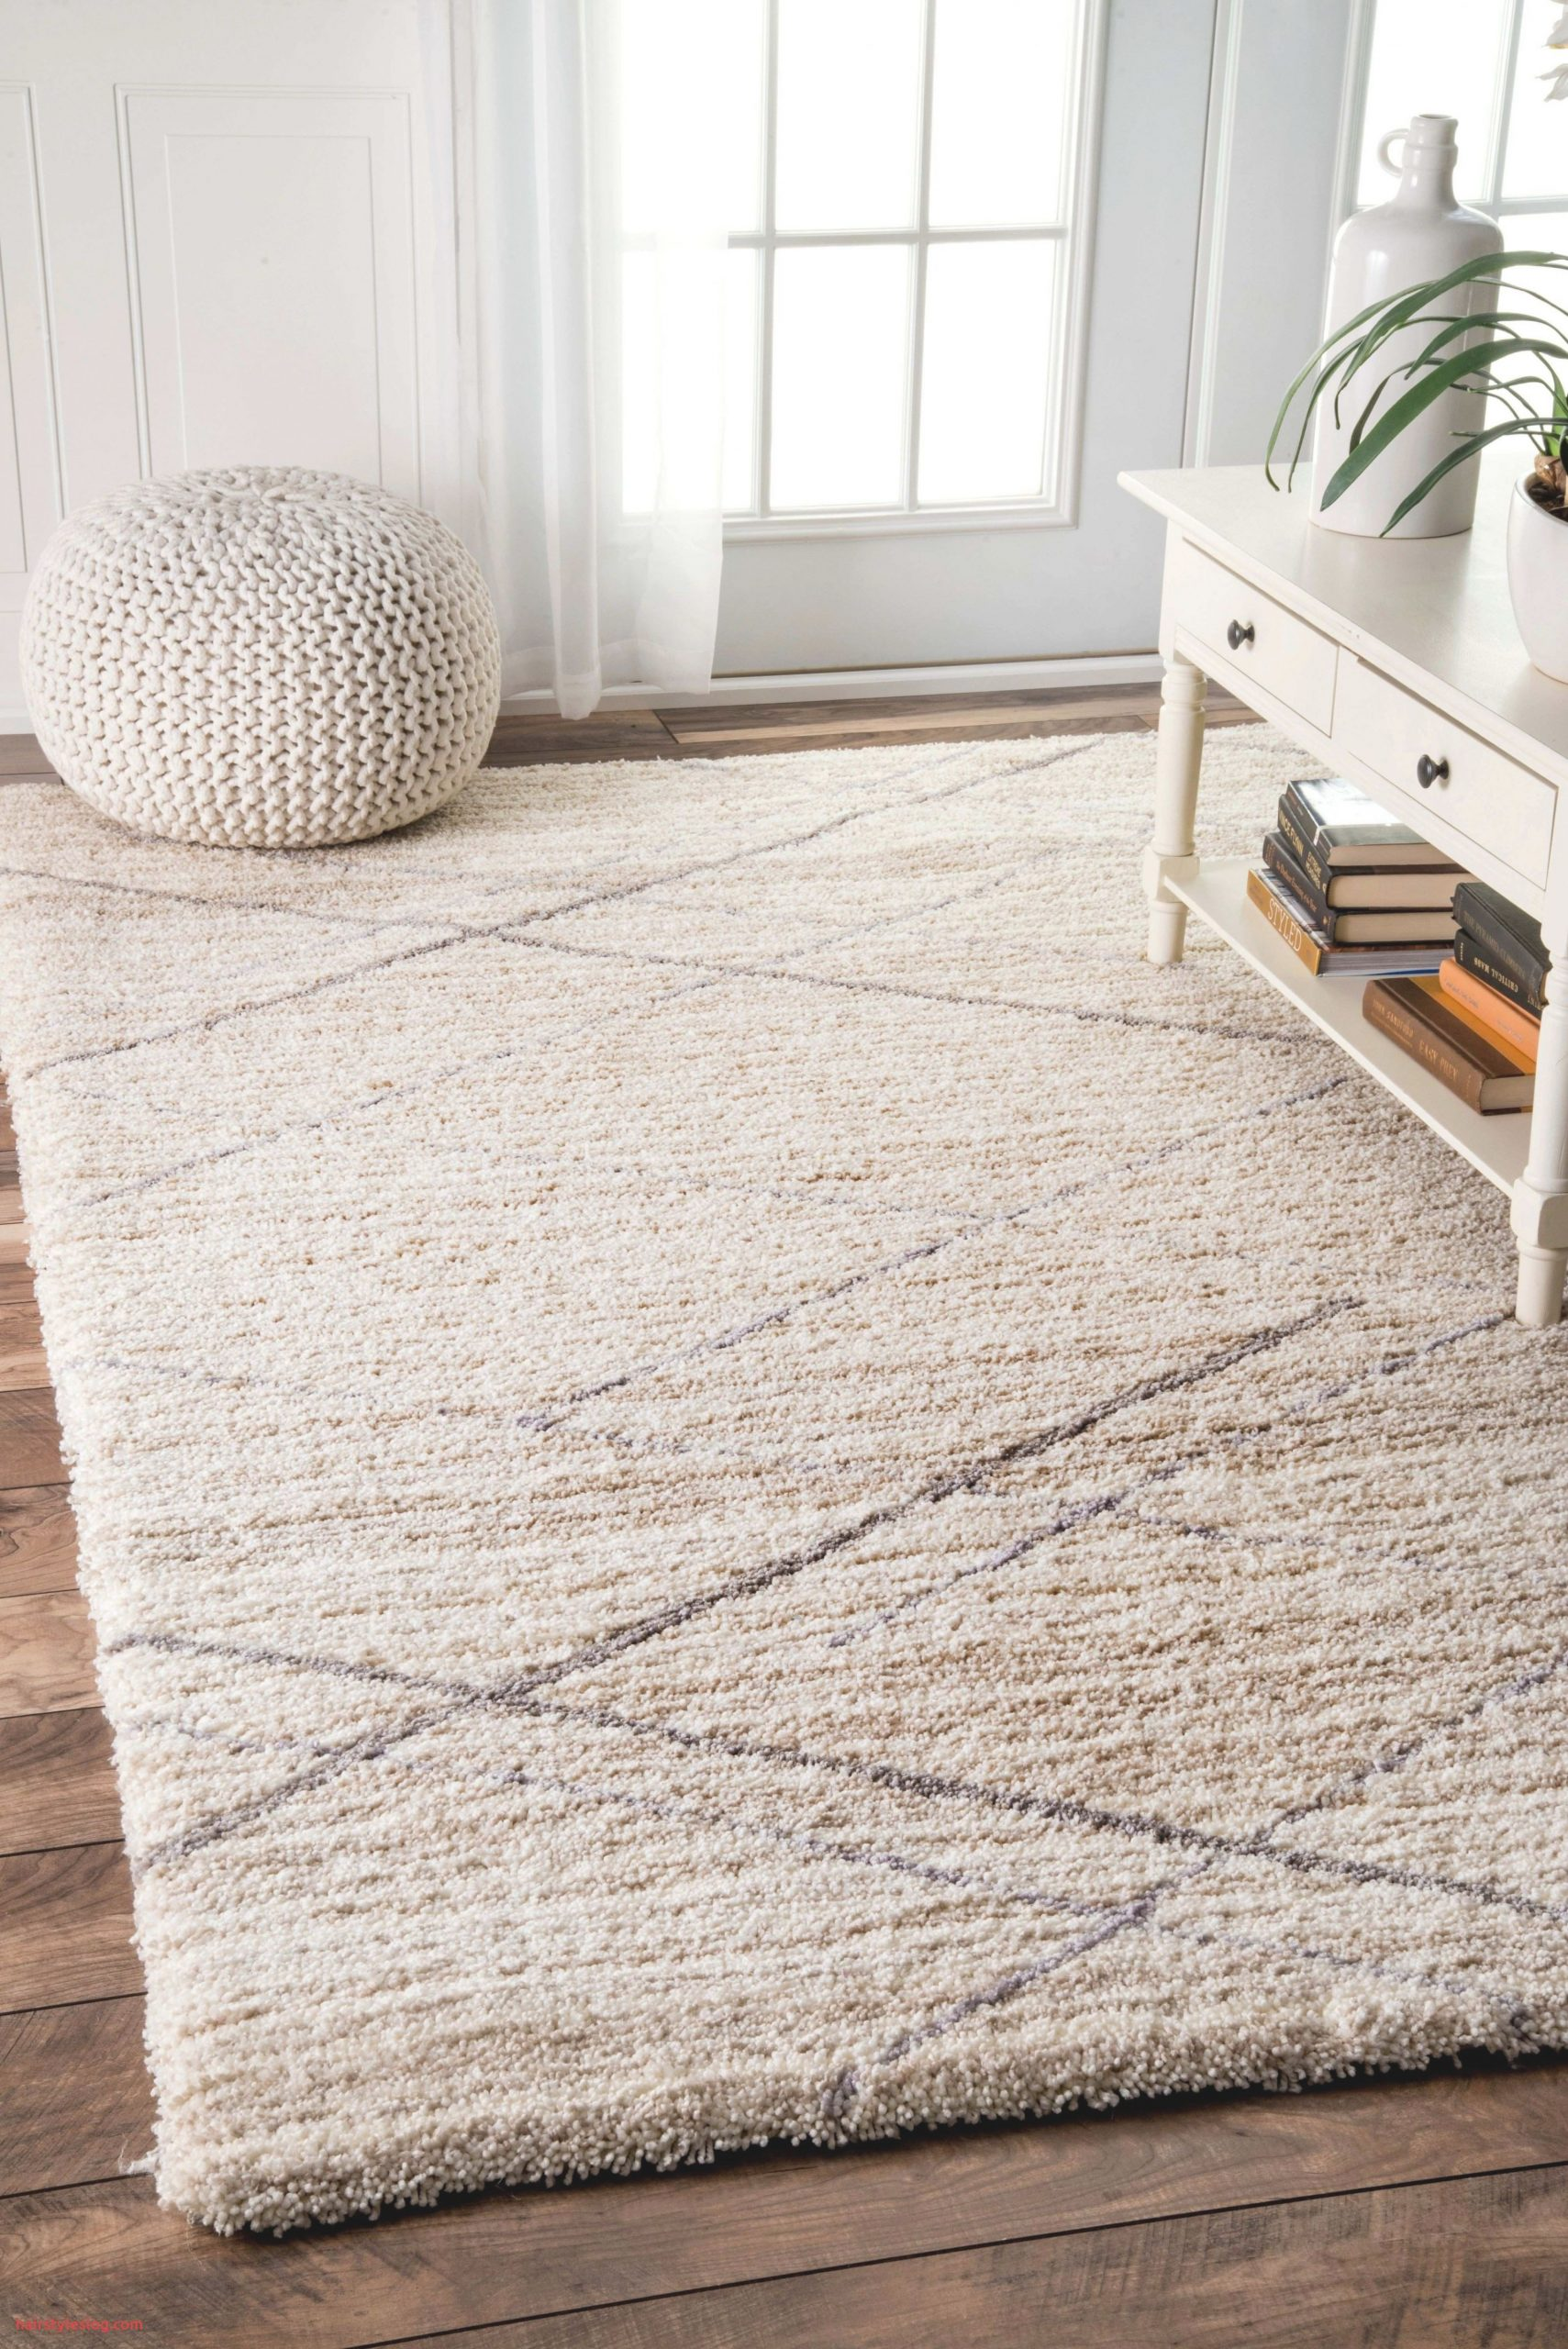 30 New 12×8 Area Rug Which Popular This Year | Shag Rug within Big Area Rugs For Living Room